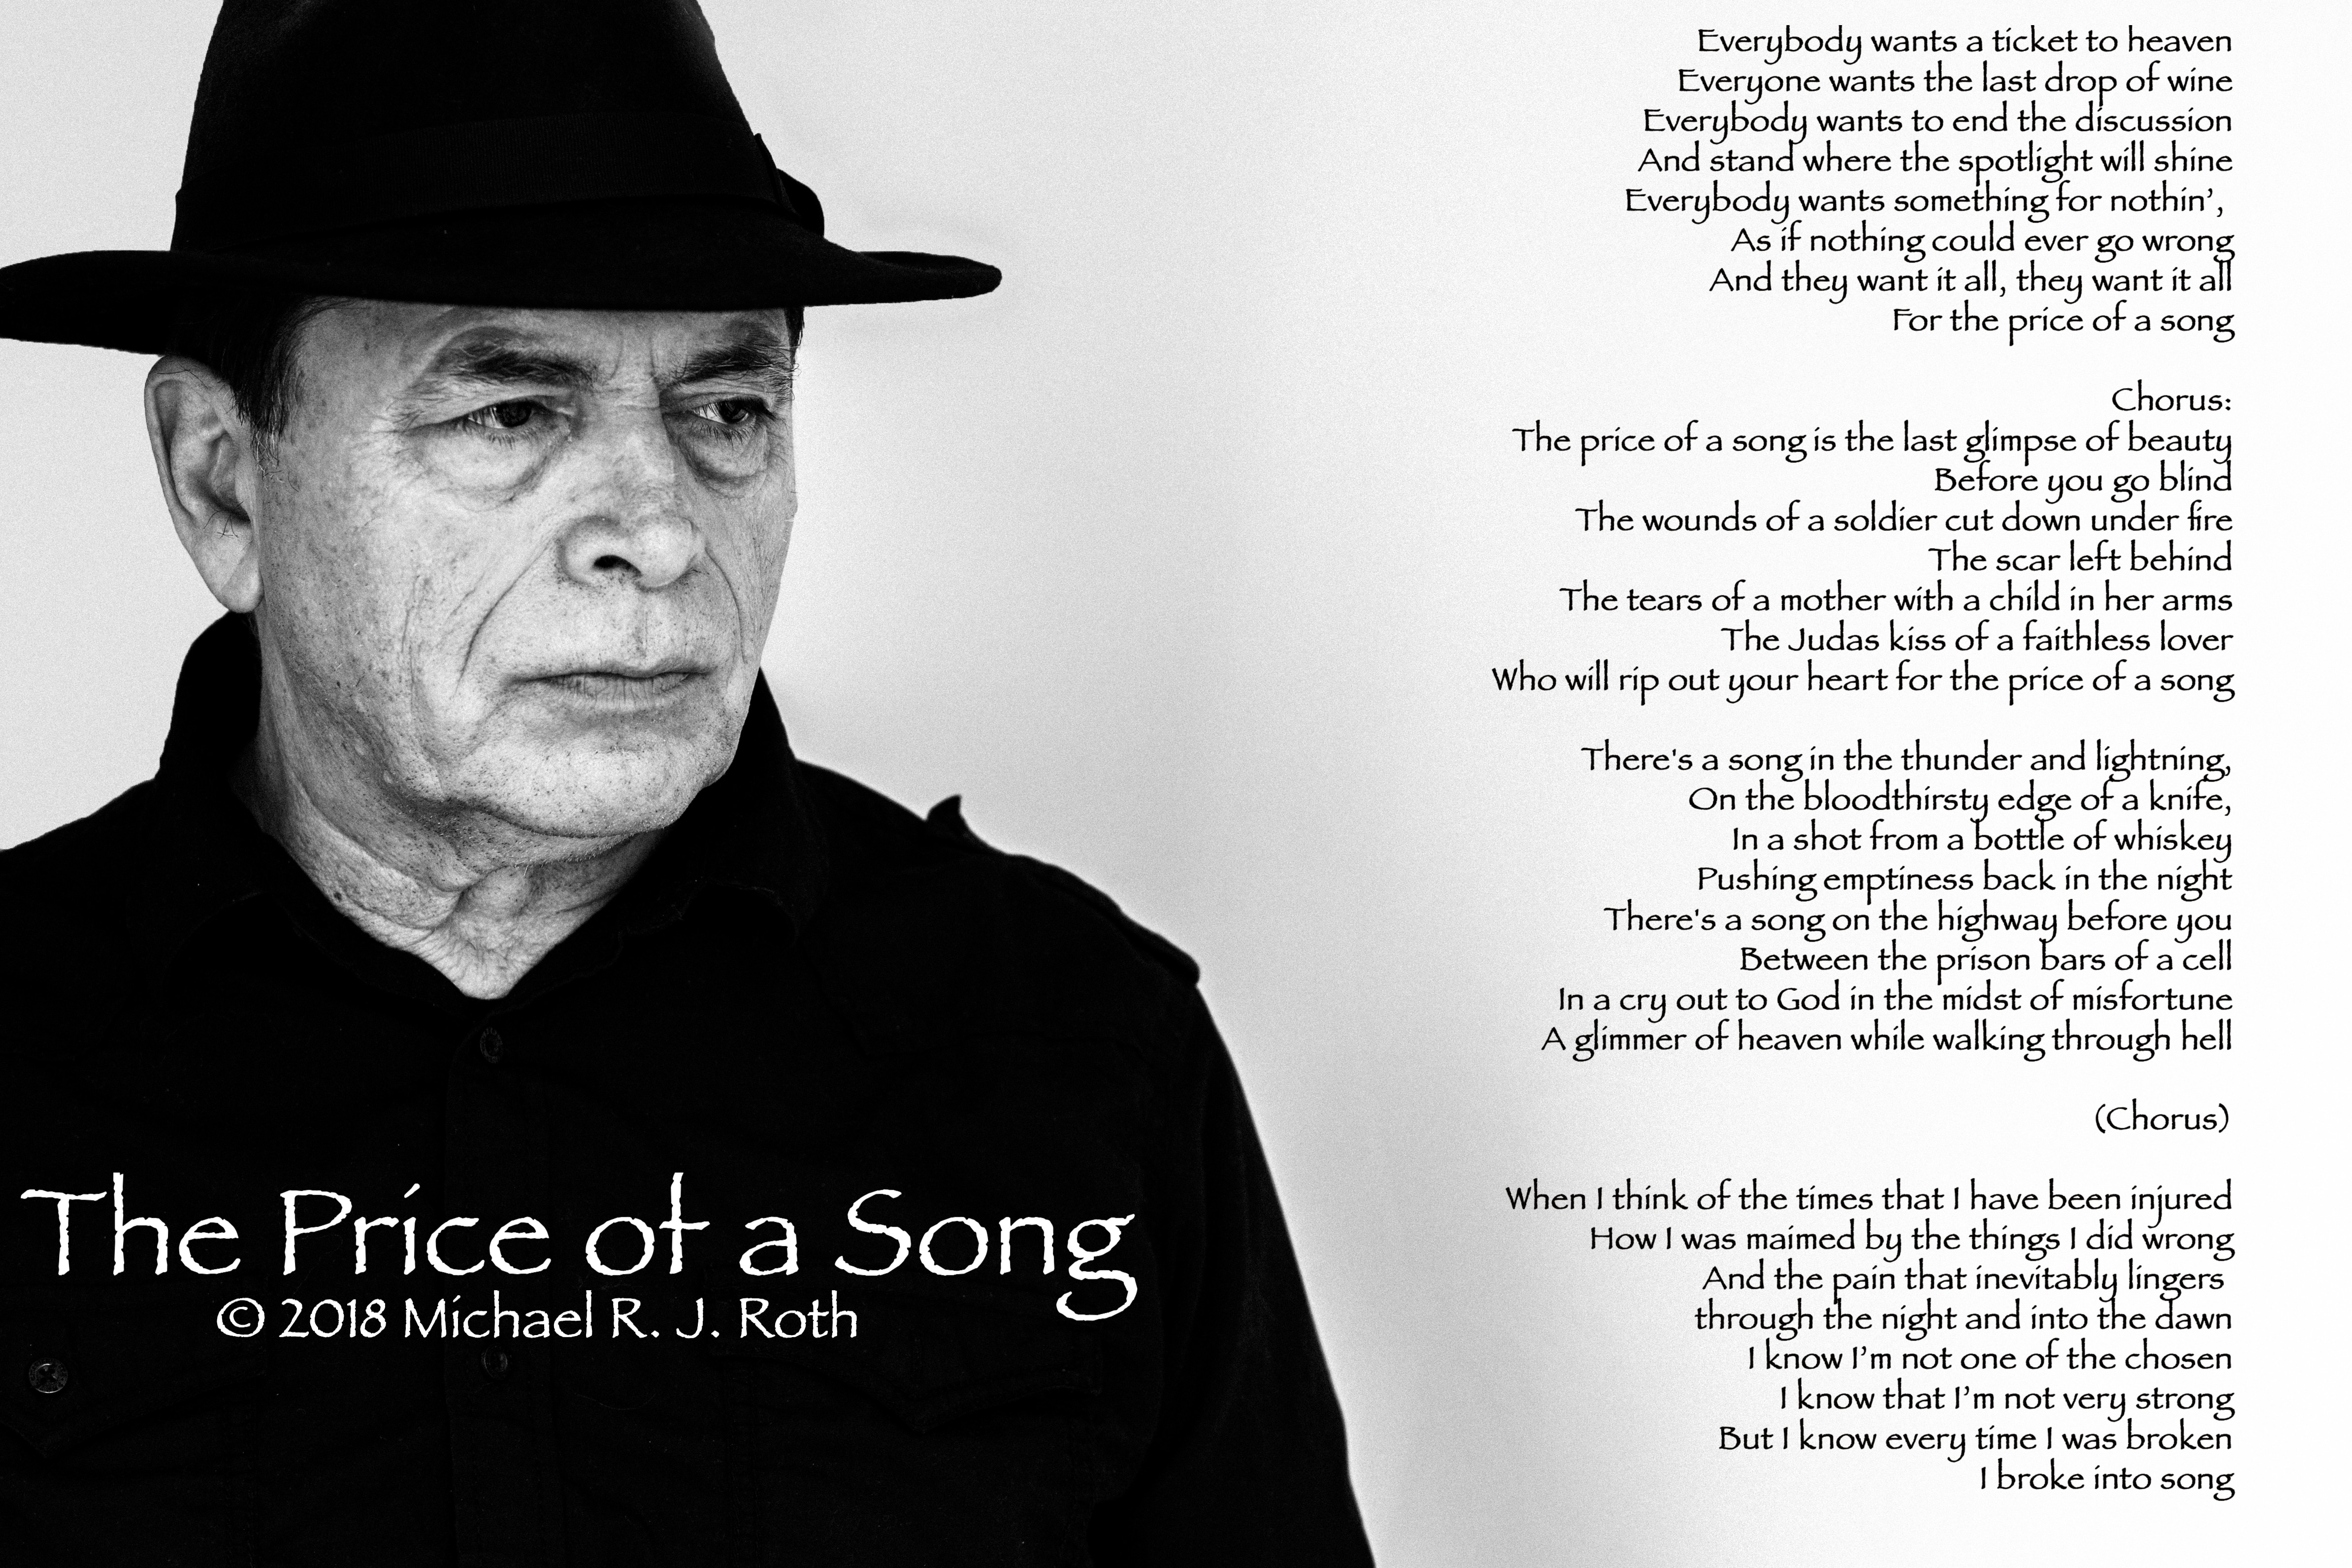 The Price of a Song